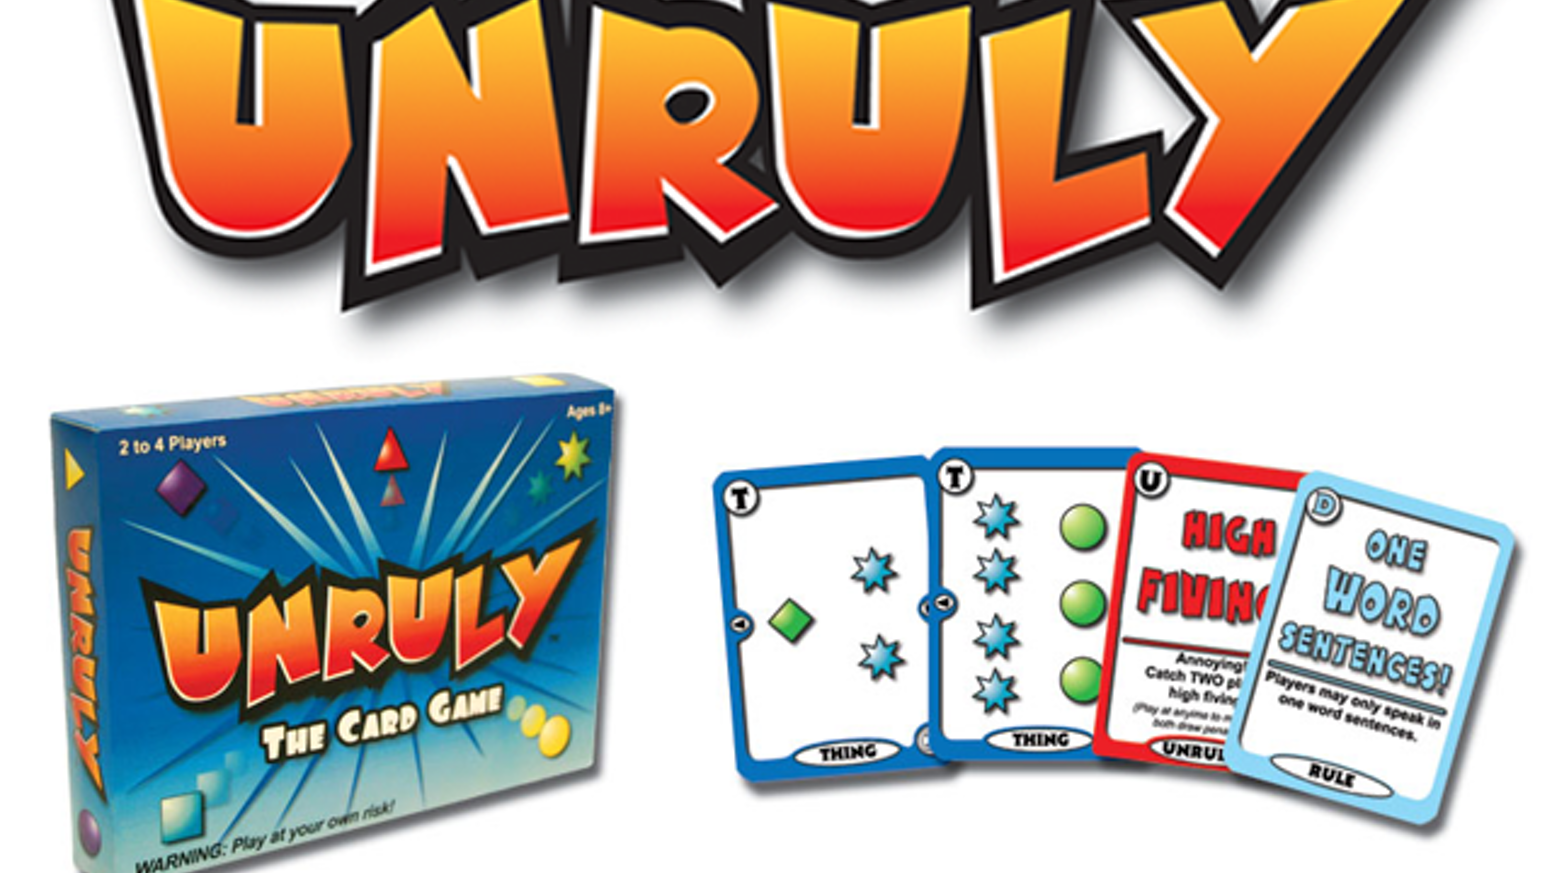 Bring your family and friends closer together with this hilariously fun, crazy intense, rule changing card game!